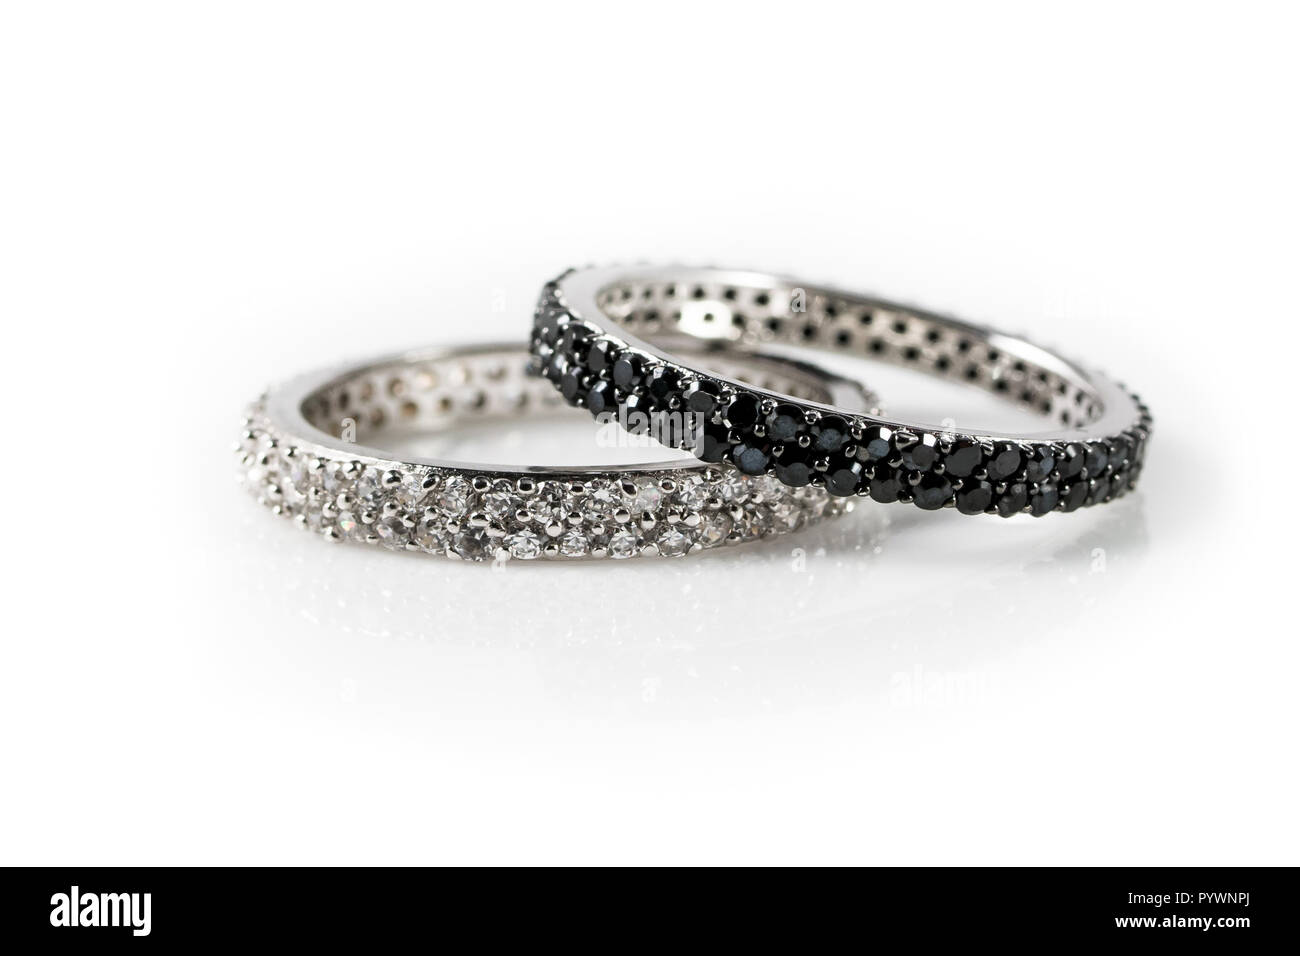 Black and white engagement rings as a symbol for a mixed races marriage - Stock Image